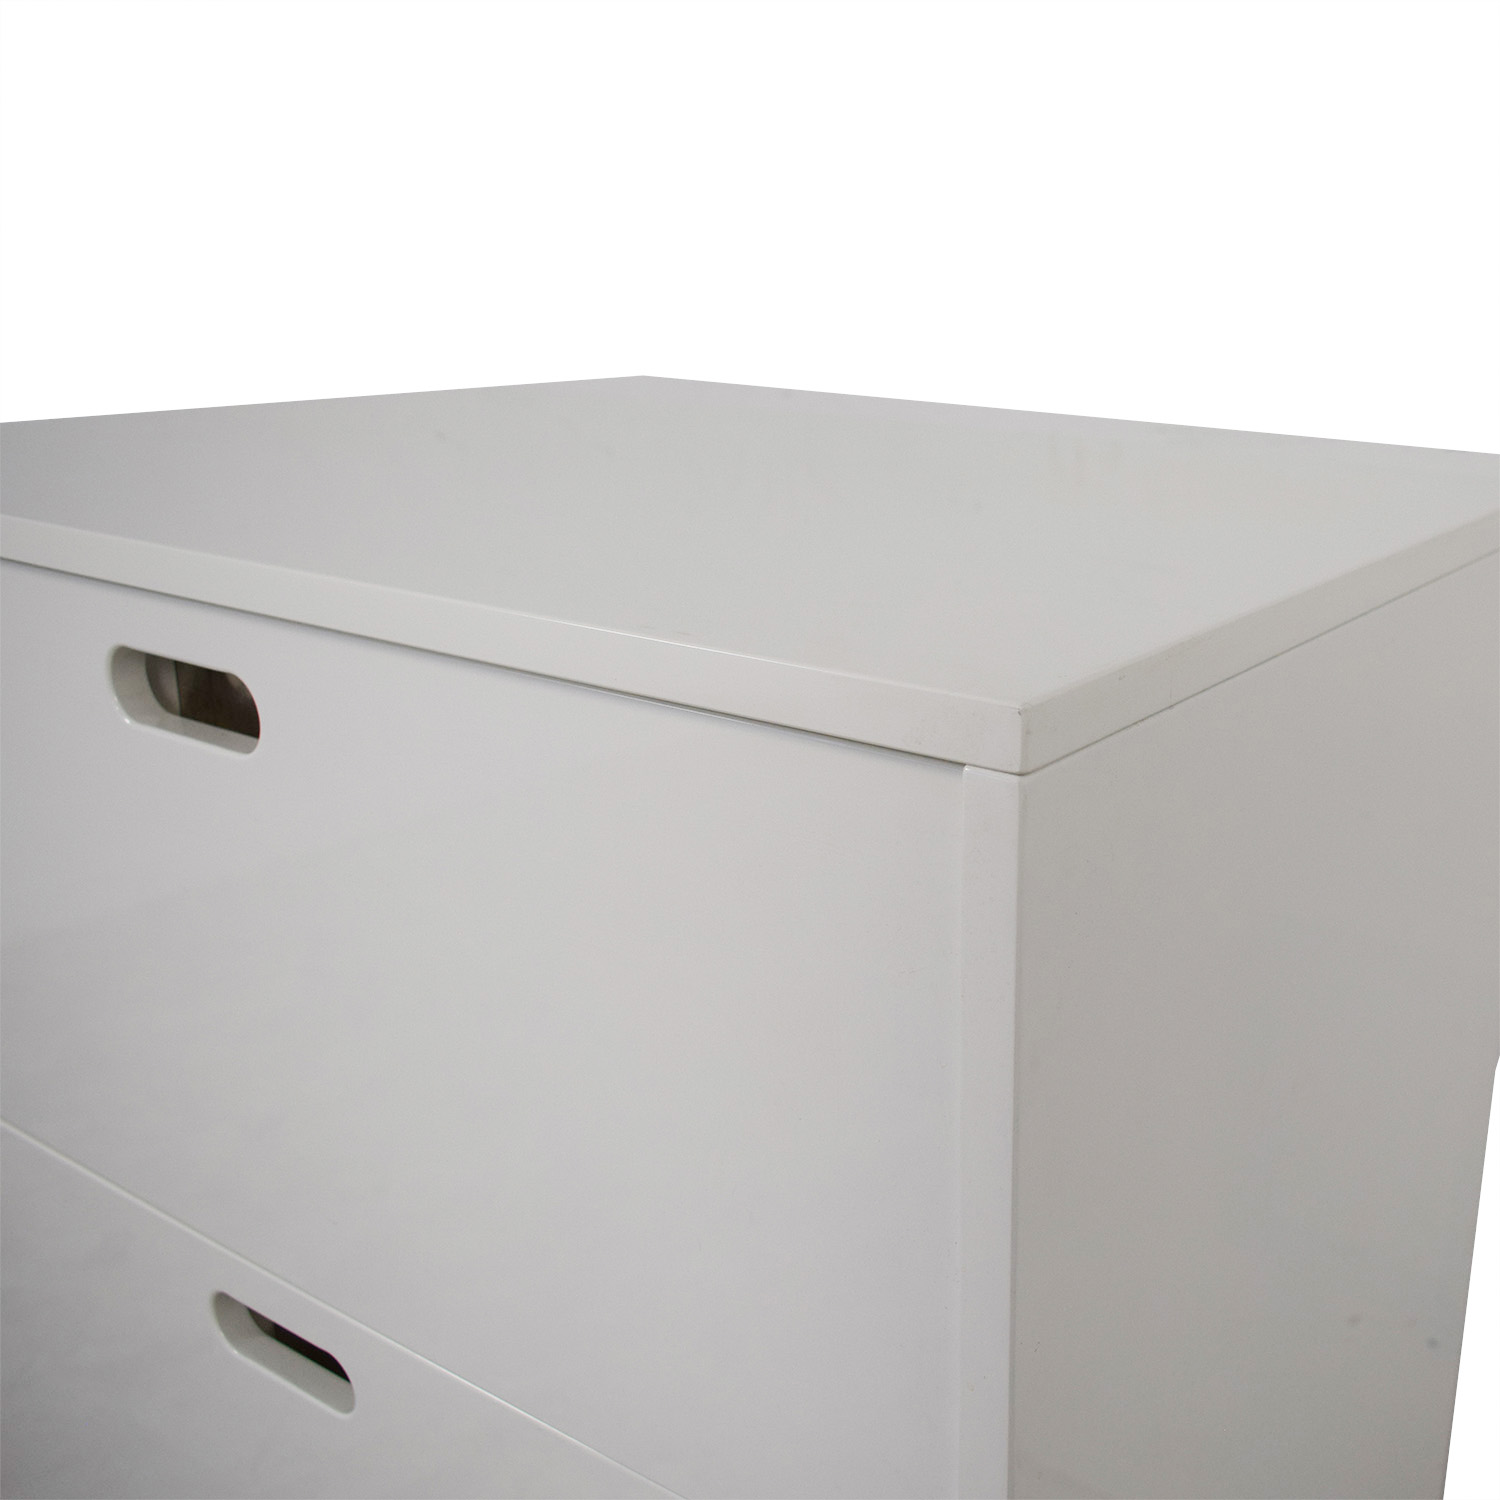 CB2 CB2 Tall Gloss Chest of Drawers nyc